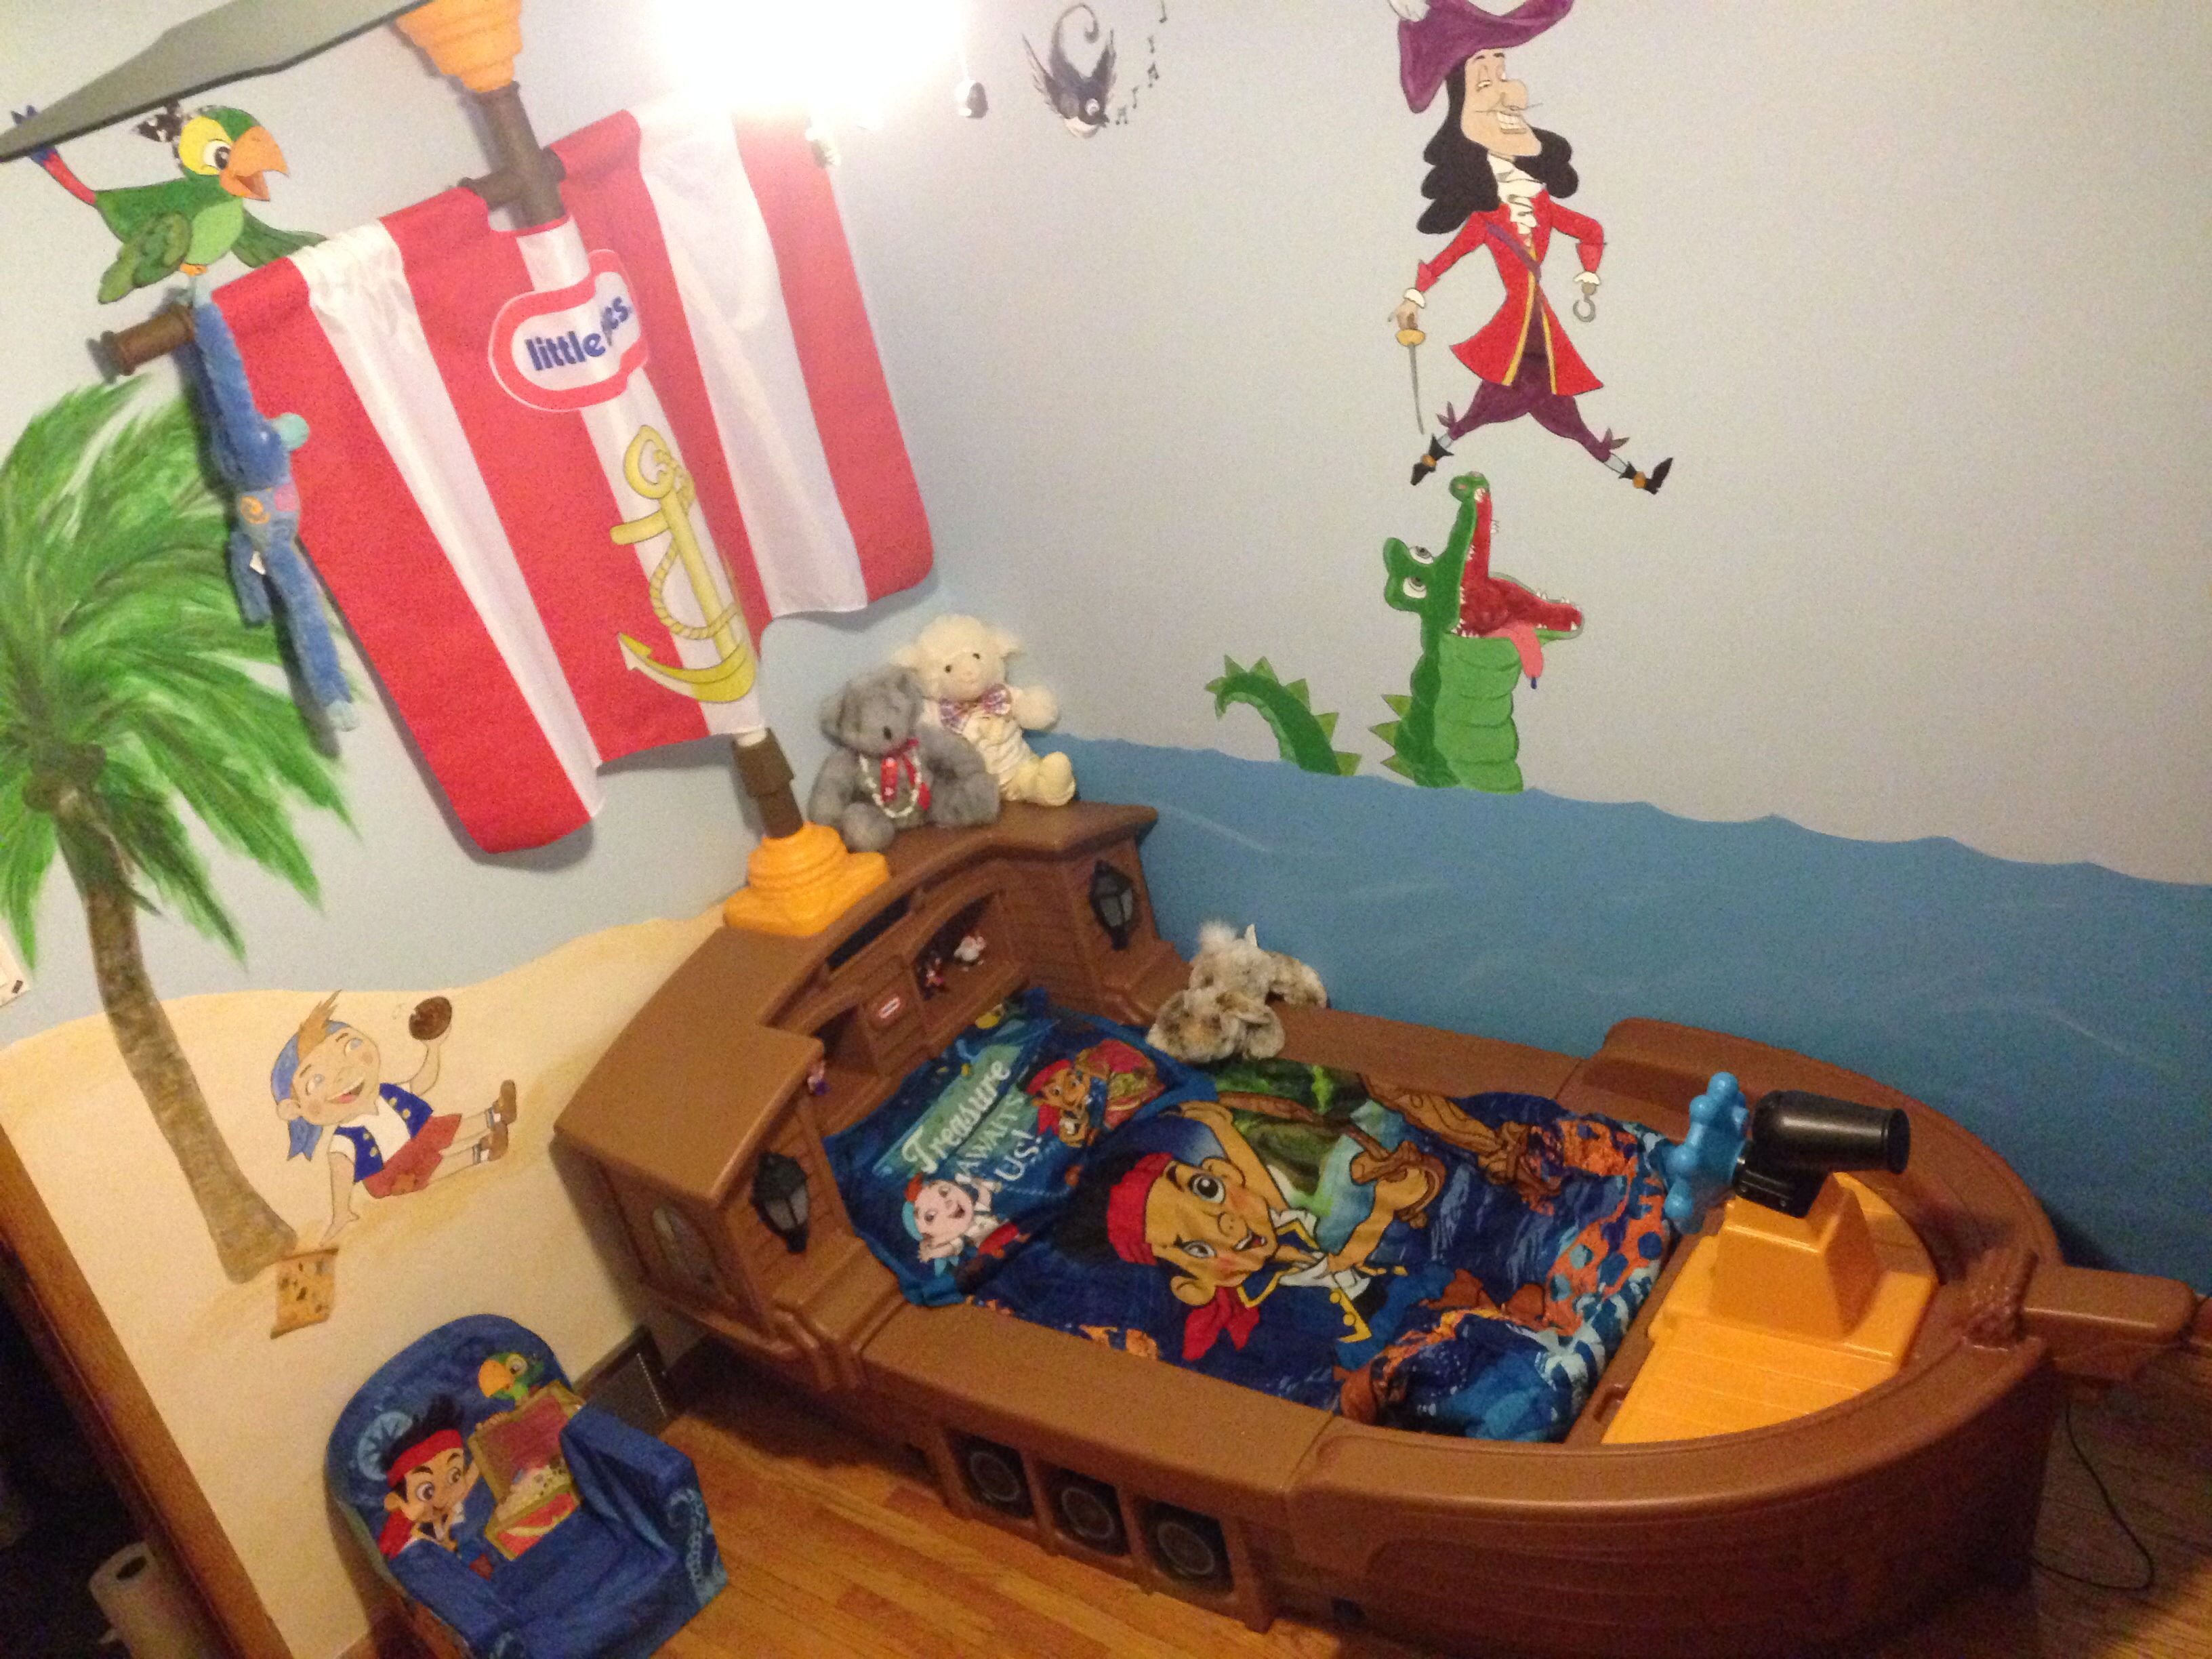 Jake and the never land pirates | Pirate Room | Pinterest | Room ...